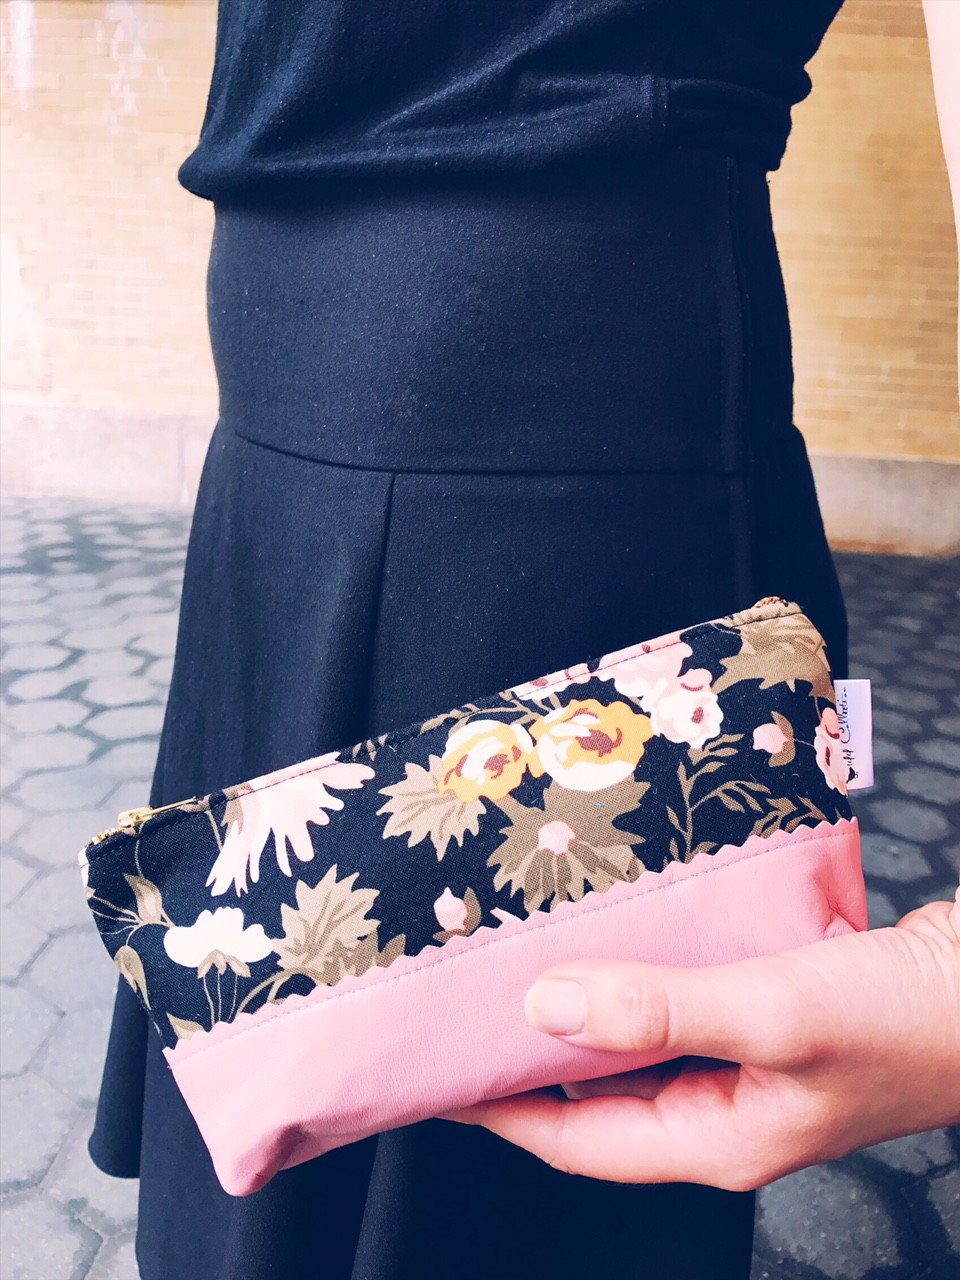 Leather Makeup Bag - Black and Pink Floral Print